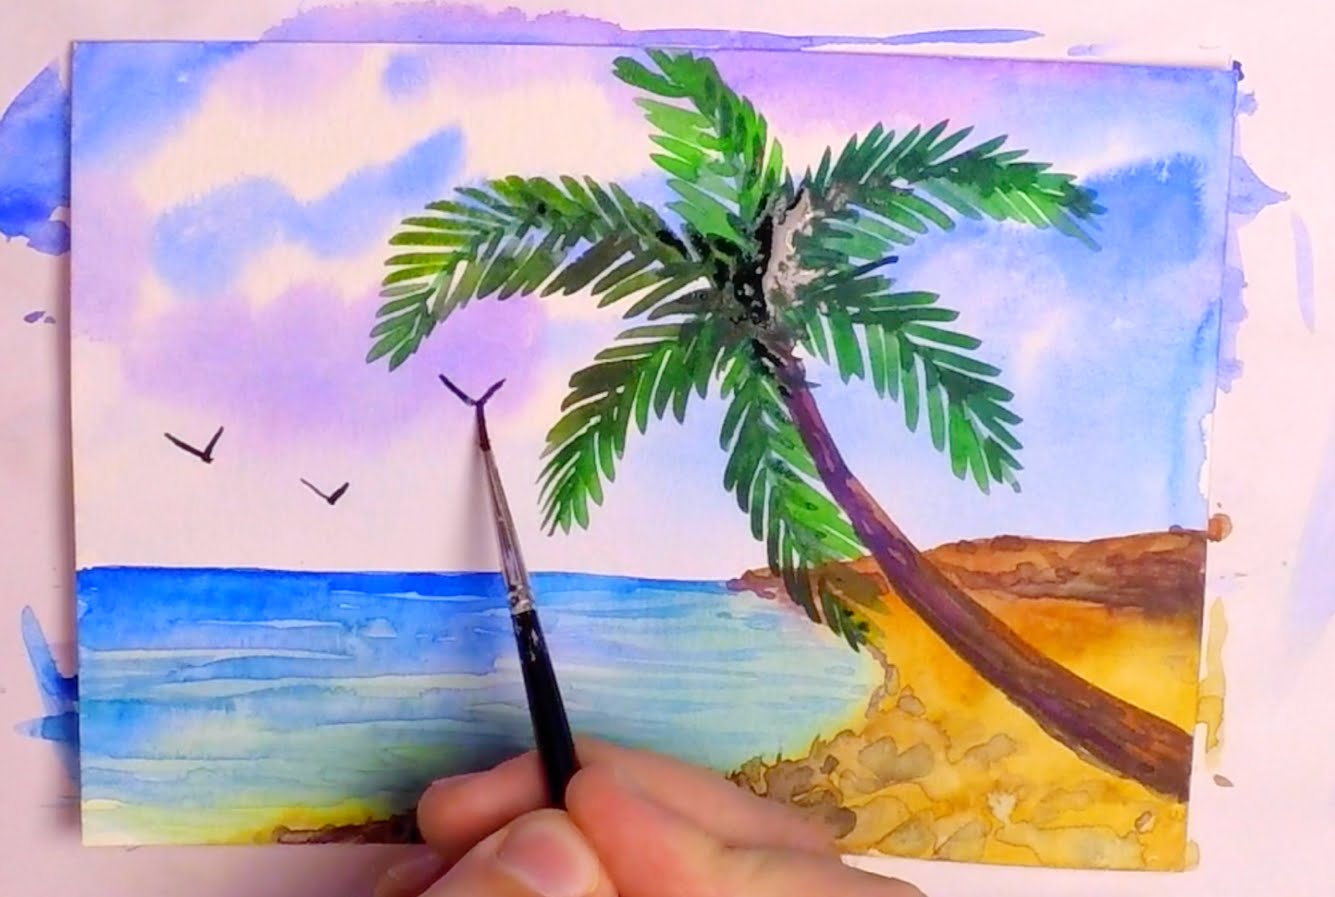 1335x897 How To Paint A Tropical Beach In Watercolor